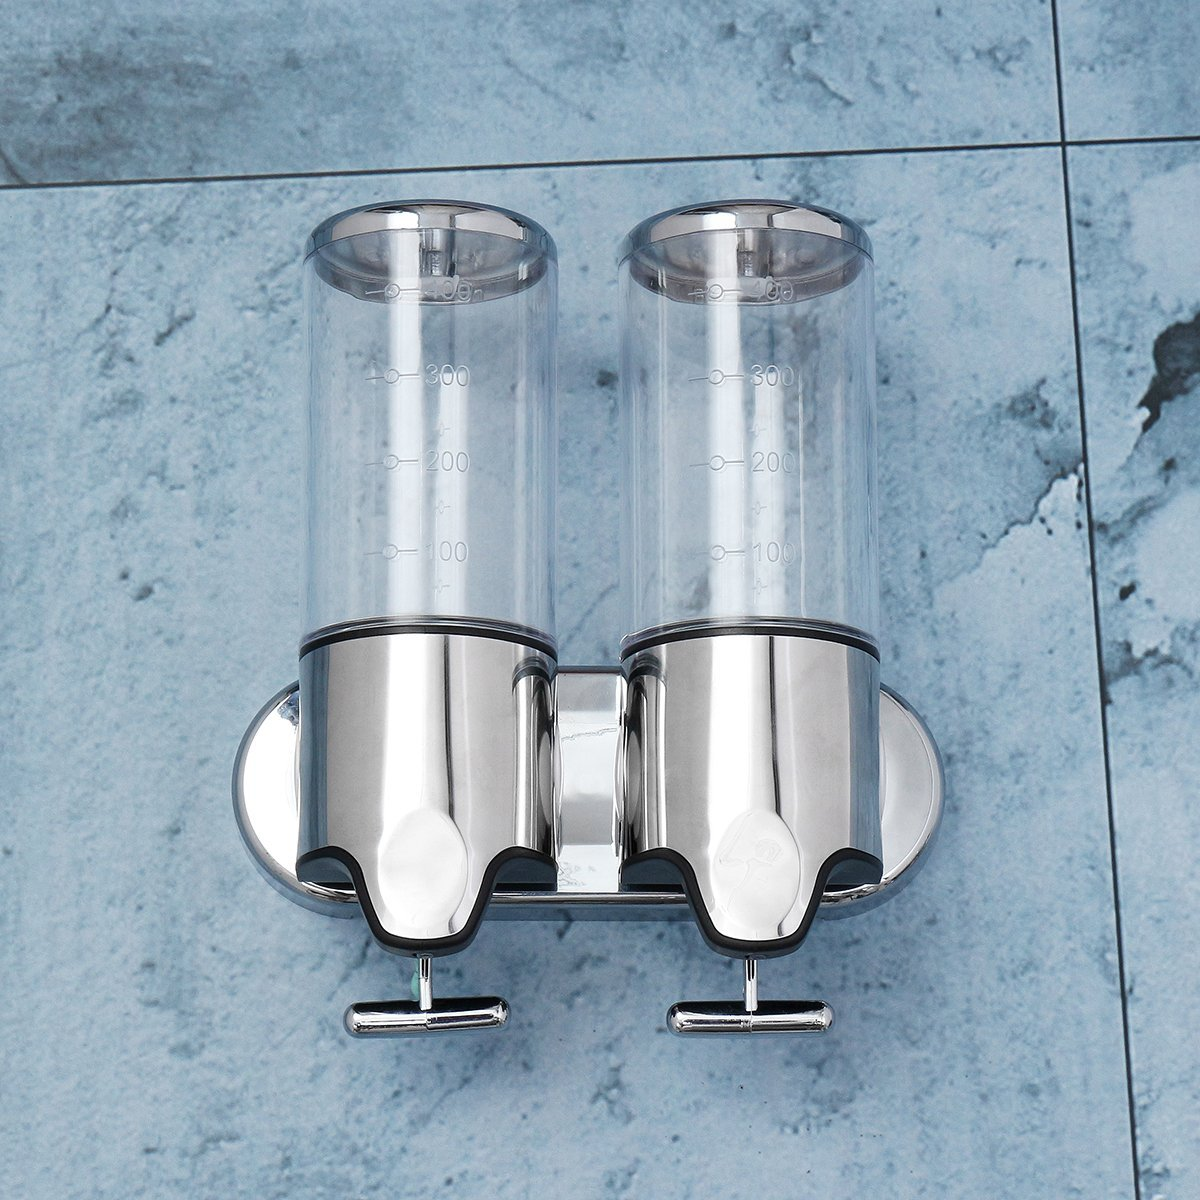 Wall Mounted Soap Dispenser, TAPCET 2X500ML Bathroom Double Liquid Dispenser Shower Dispenser Stainless Steel Double 500ML Bottles Shampoo Conditioner Hand Cream Dispenser for Bathroom/ Kitchen/ Hotel